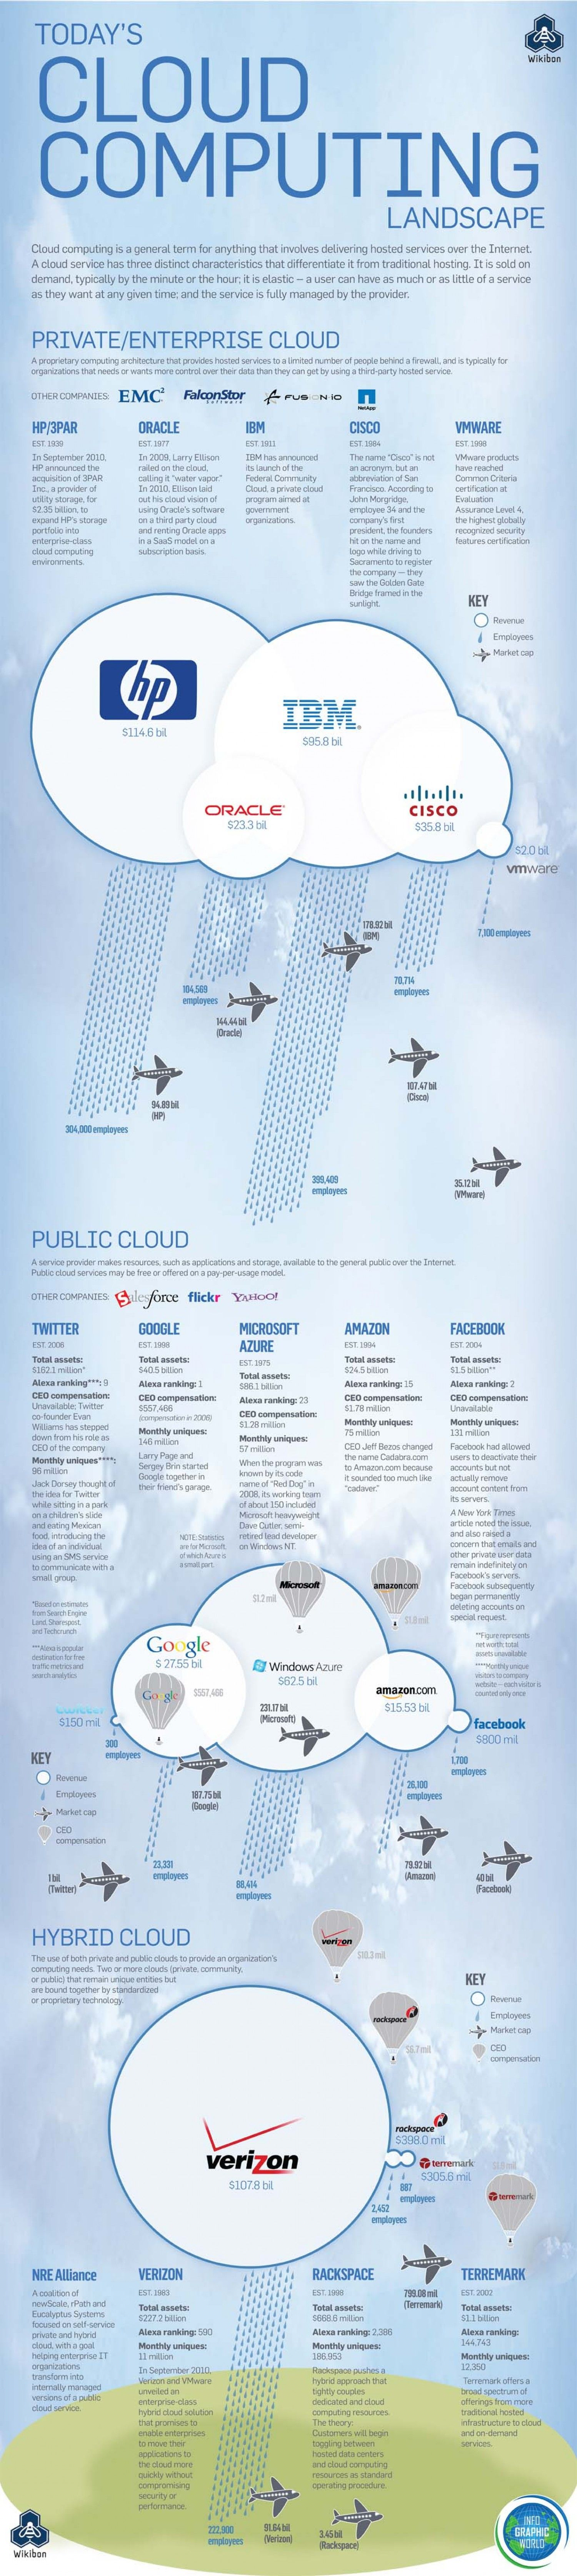 Today's Cloud Computing Landscape Infographic http//www